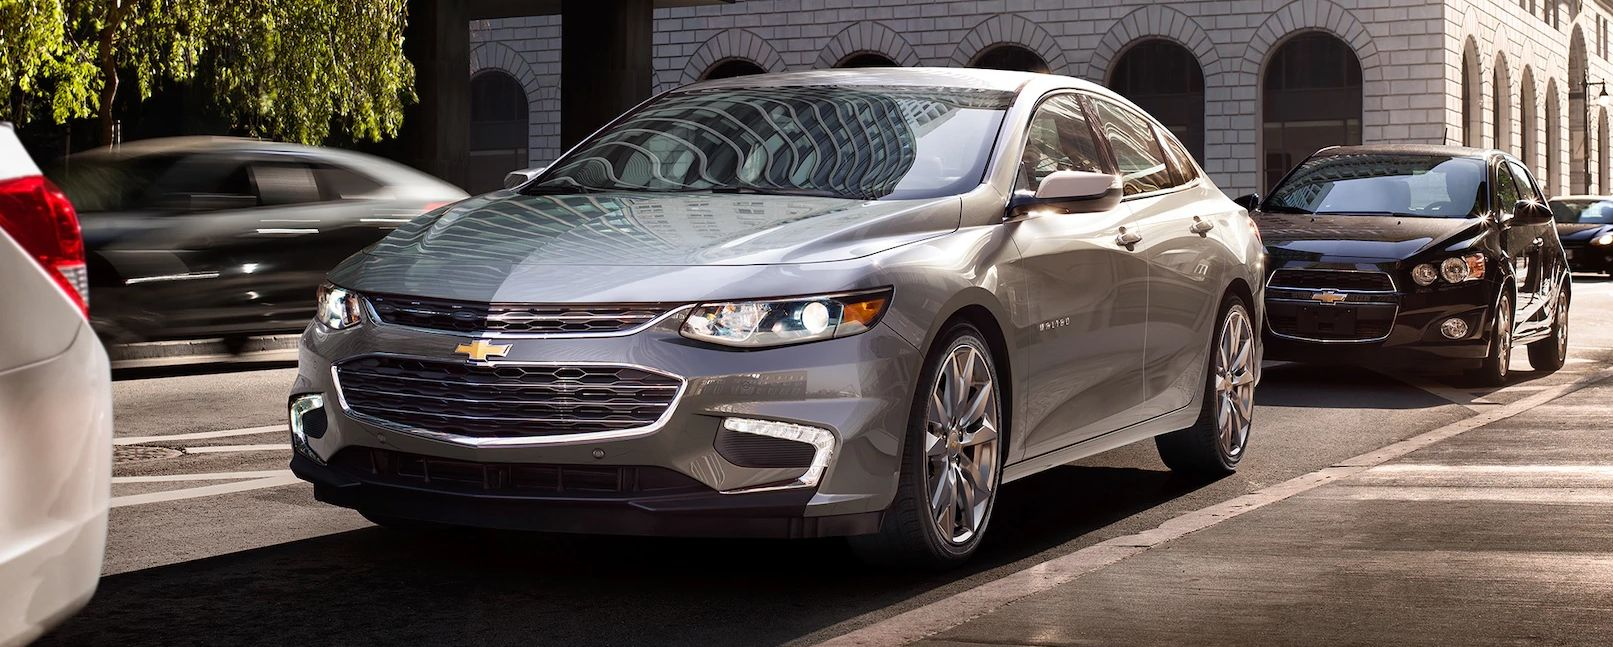 2018 Chevrolet Malibu for Sale near Hammond, IN